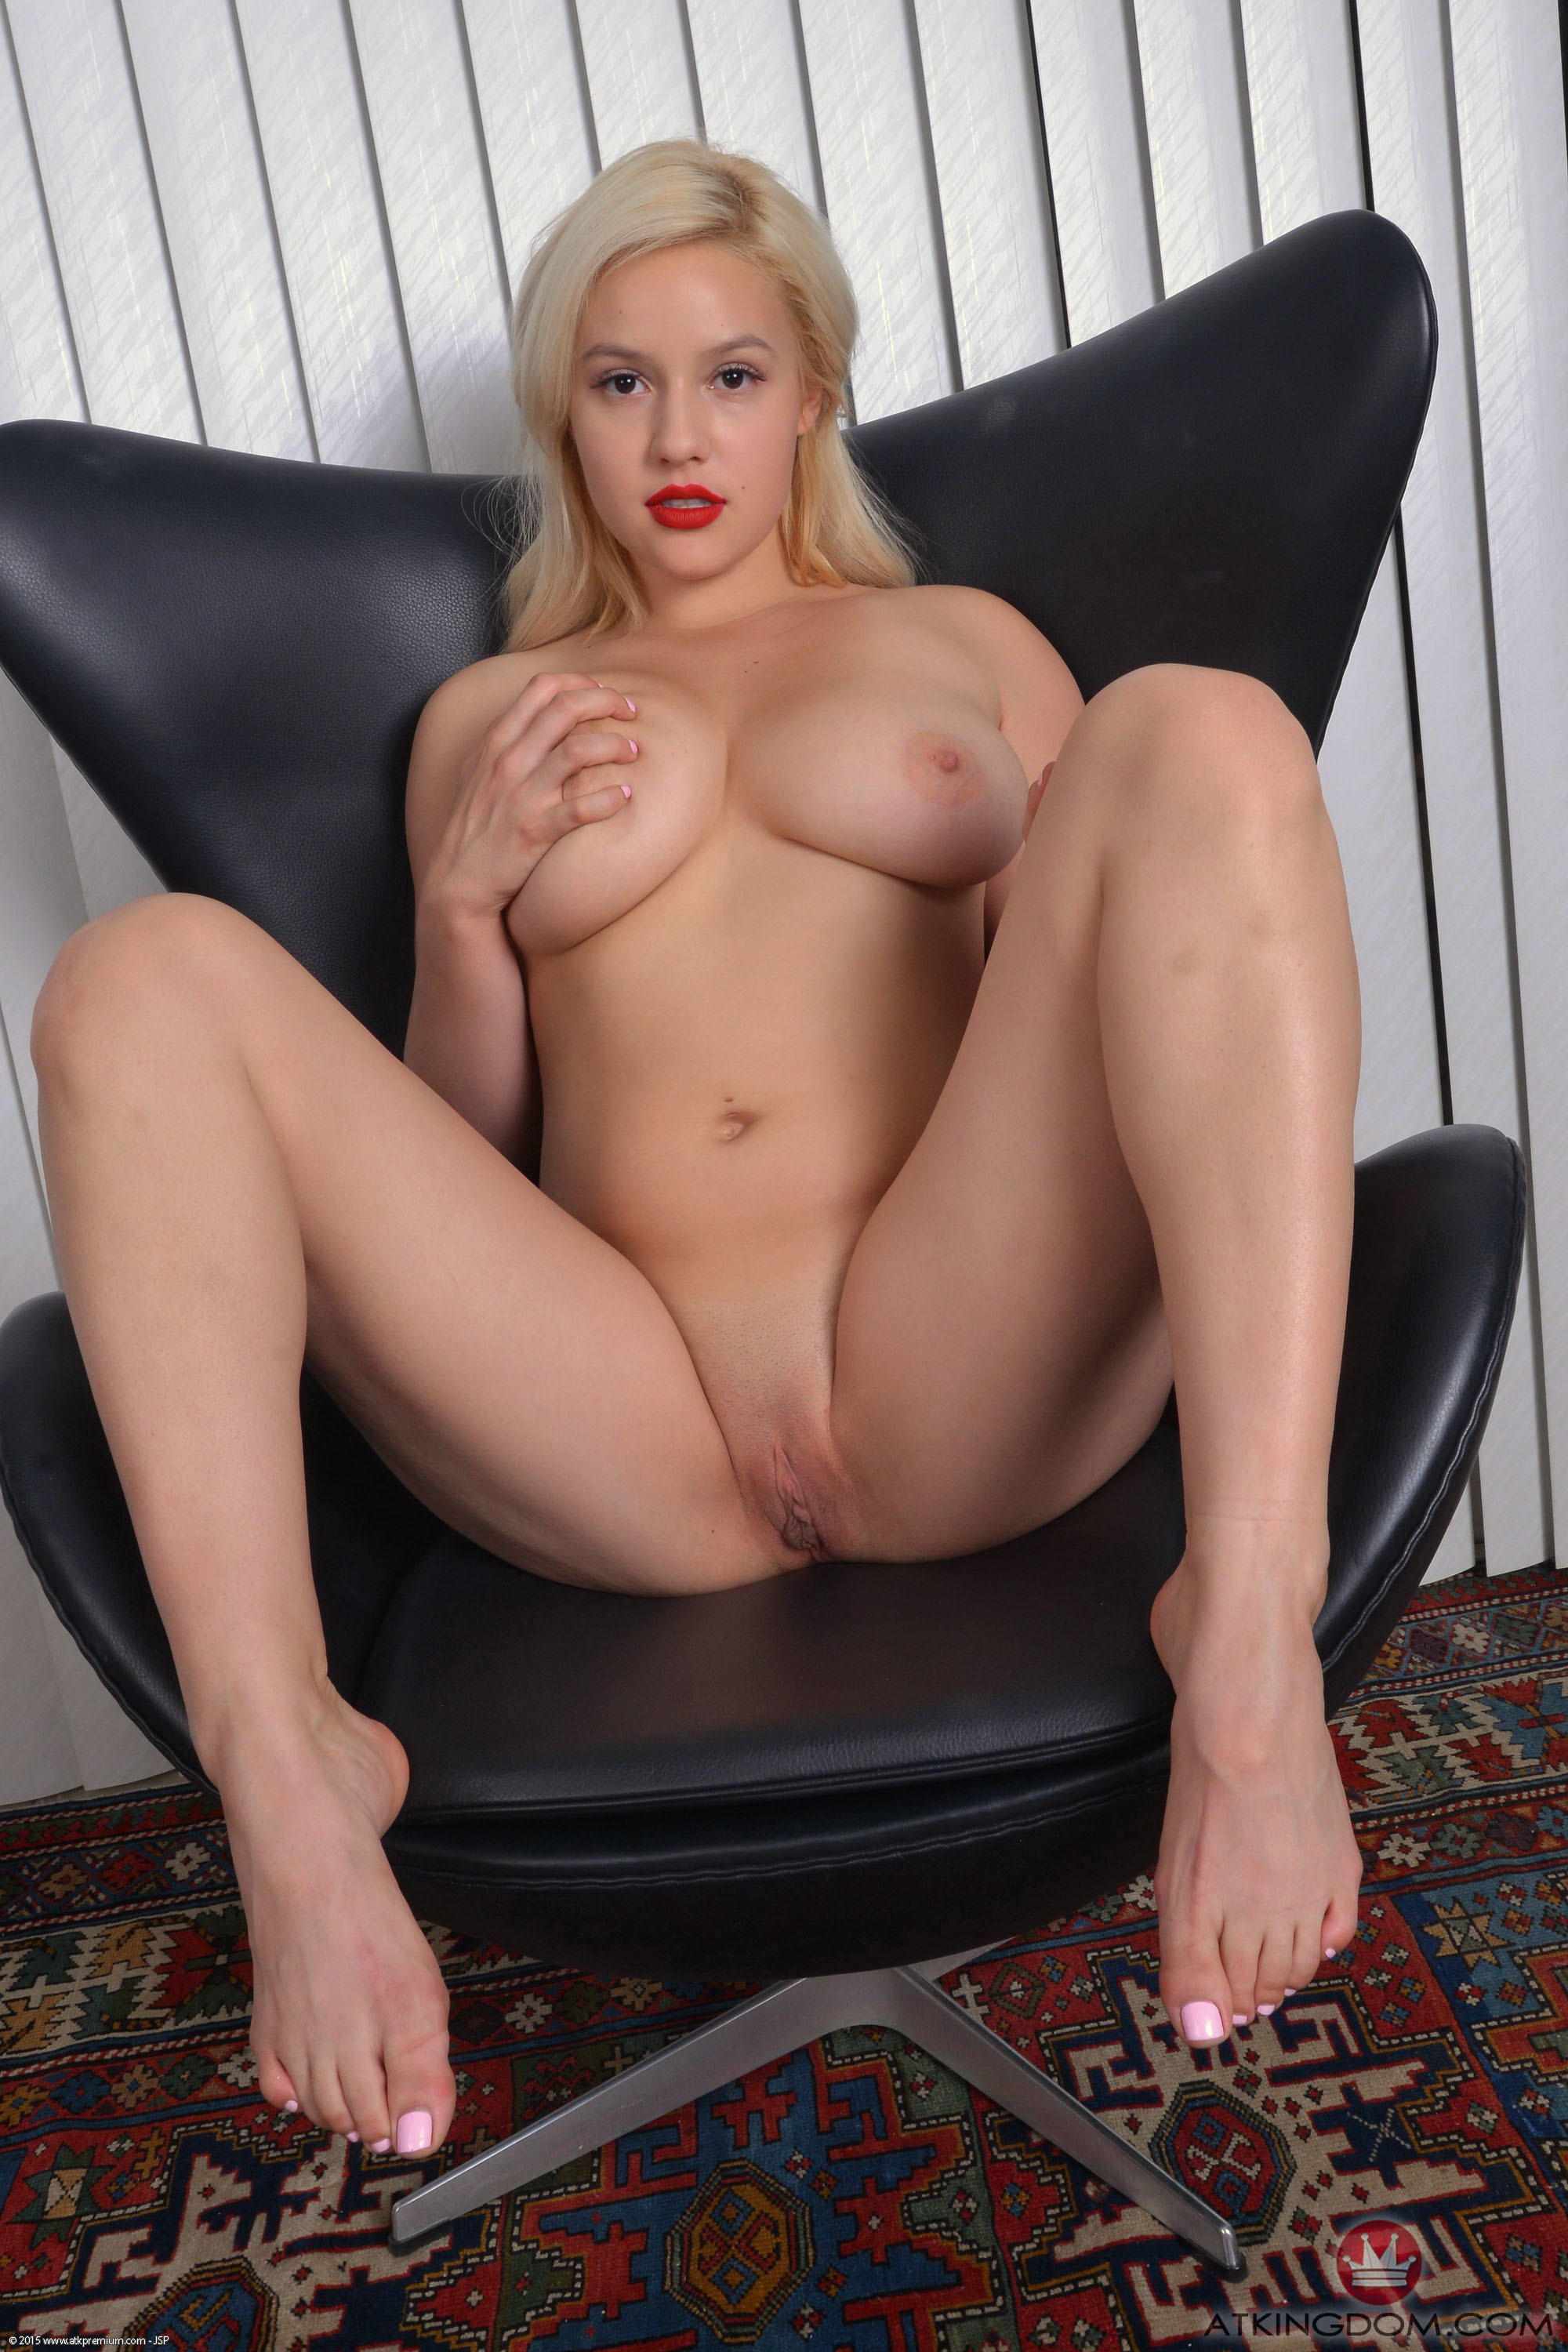 calliste mature redhead cougar rides bbc Bigboobs, Blonde, Busty, Horny, Mistress, Nicebody, Openlegs, Pov, Pussy, Sexy, Stockings, Thighs, Trimmed, Yesmistress